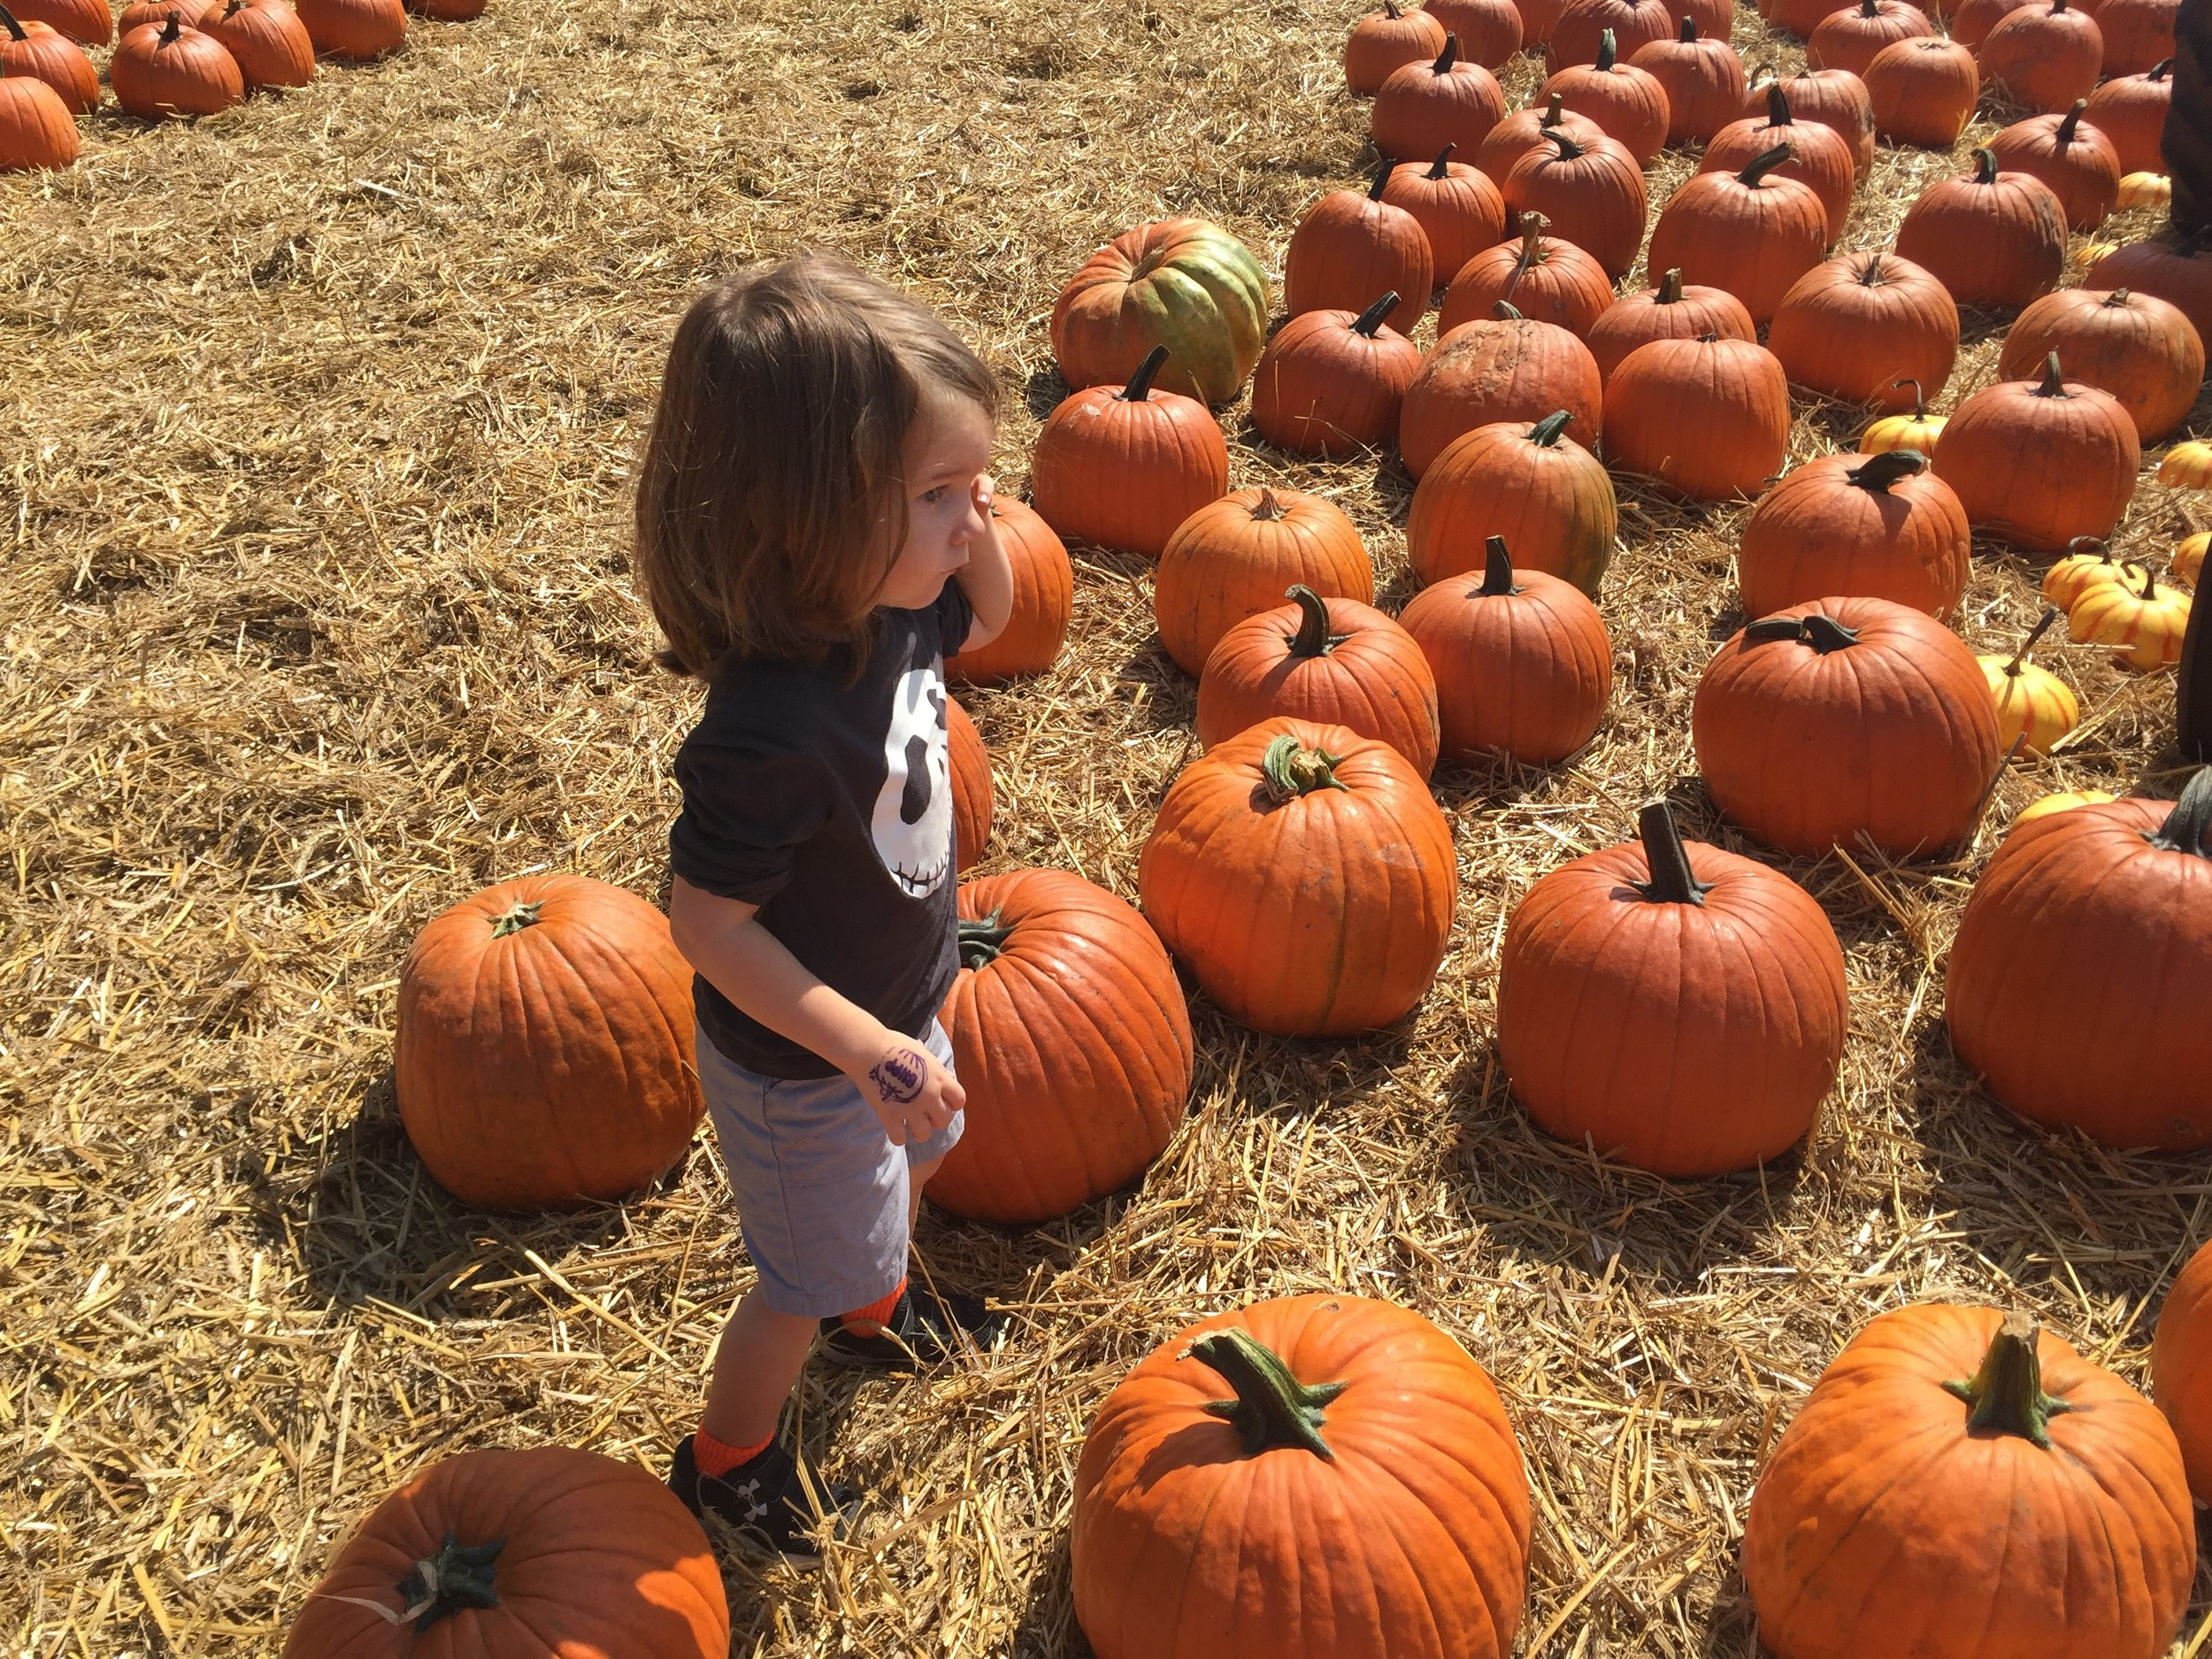 B trying to pick out his pumpkin